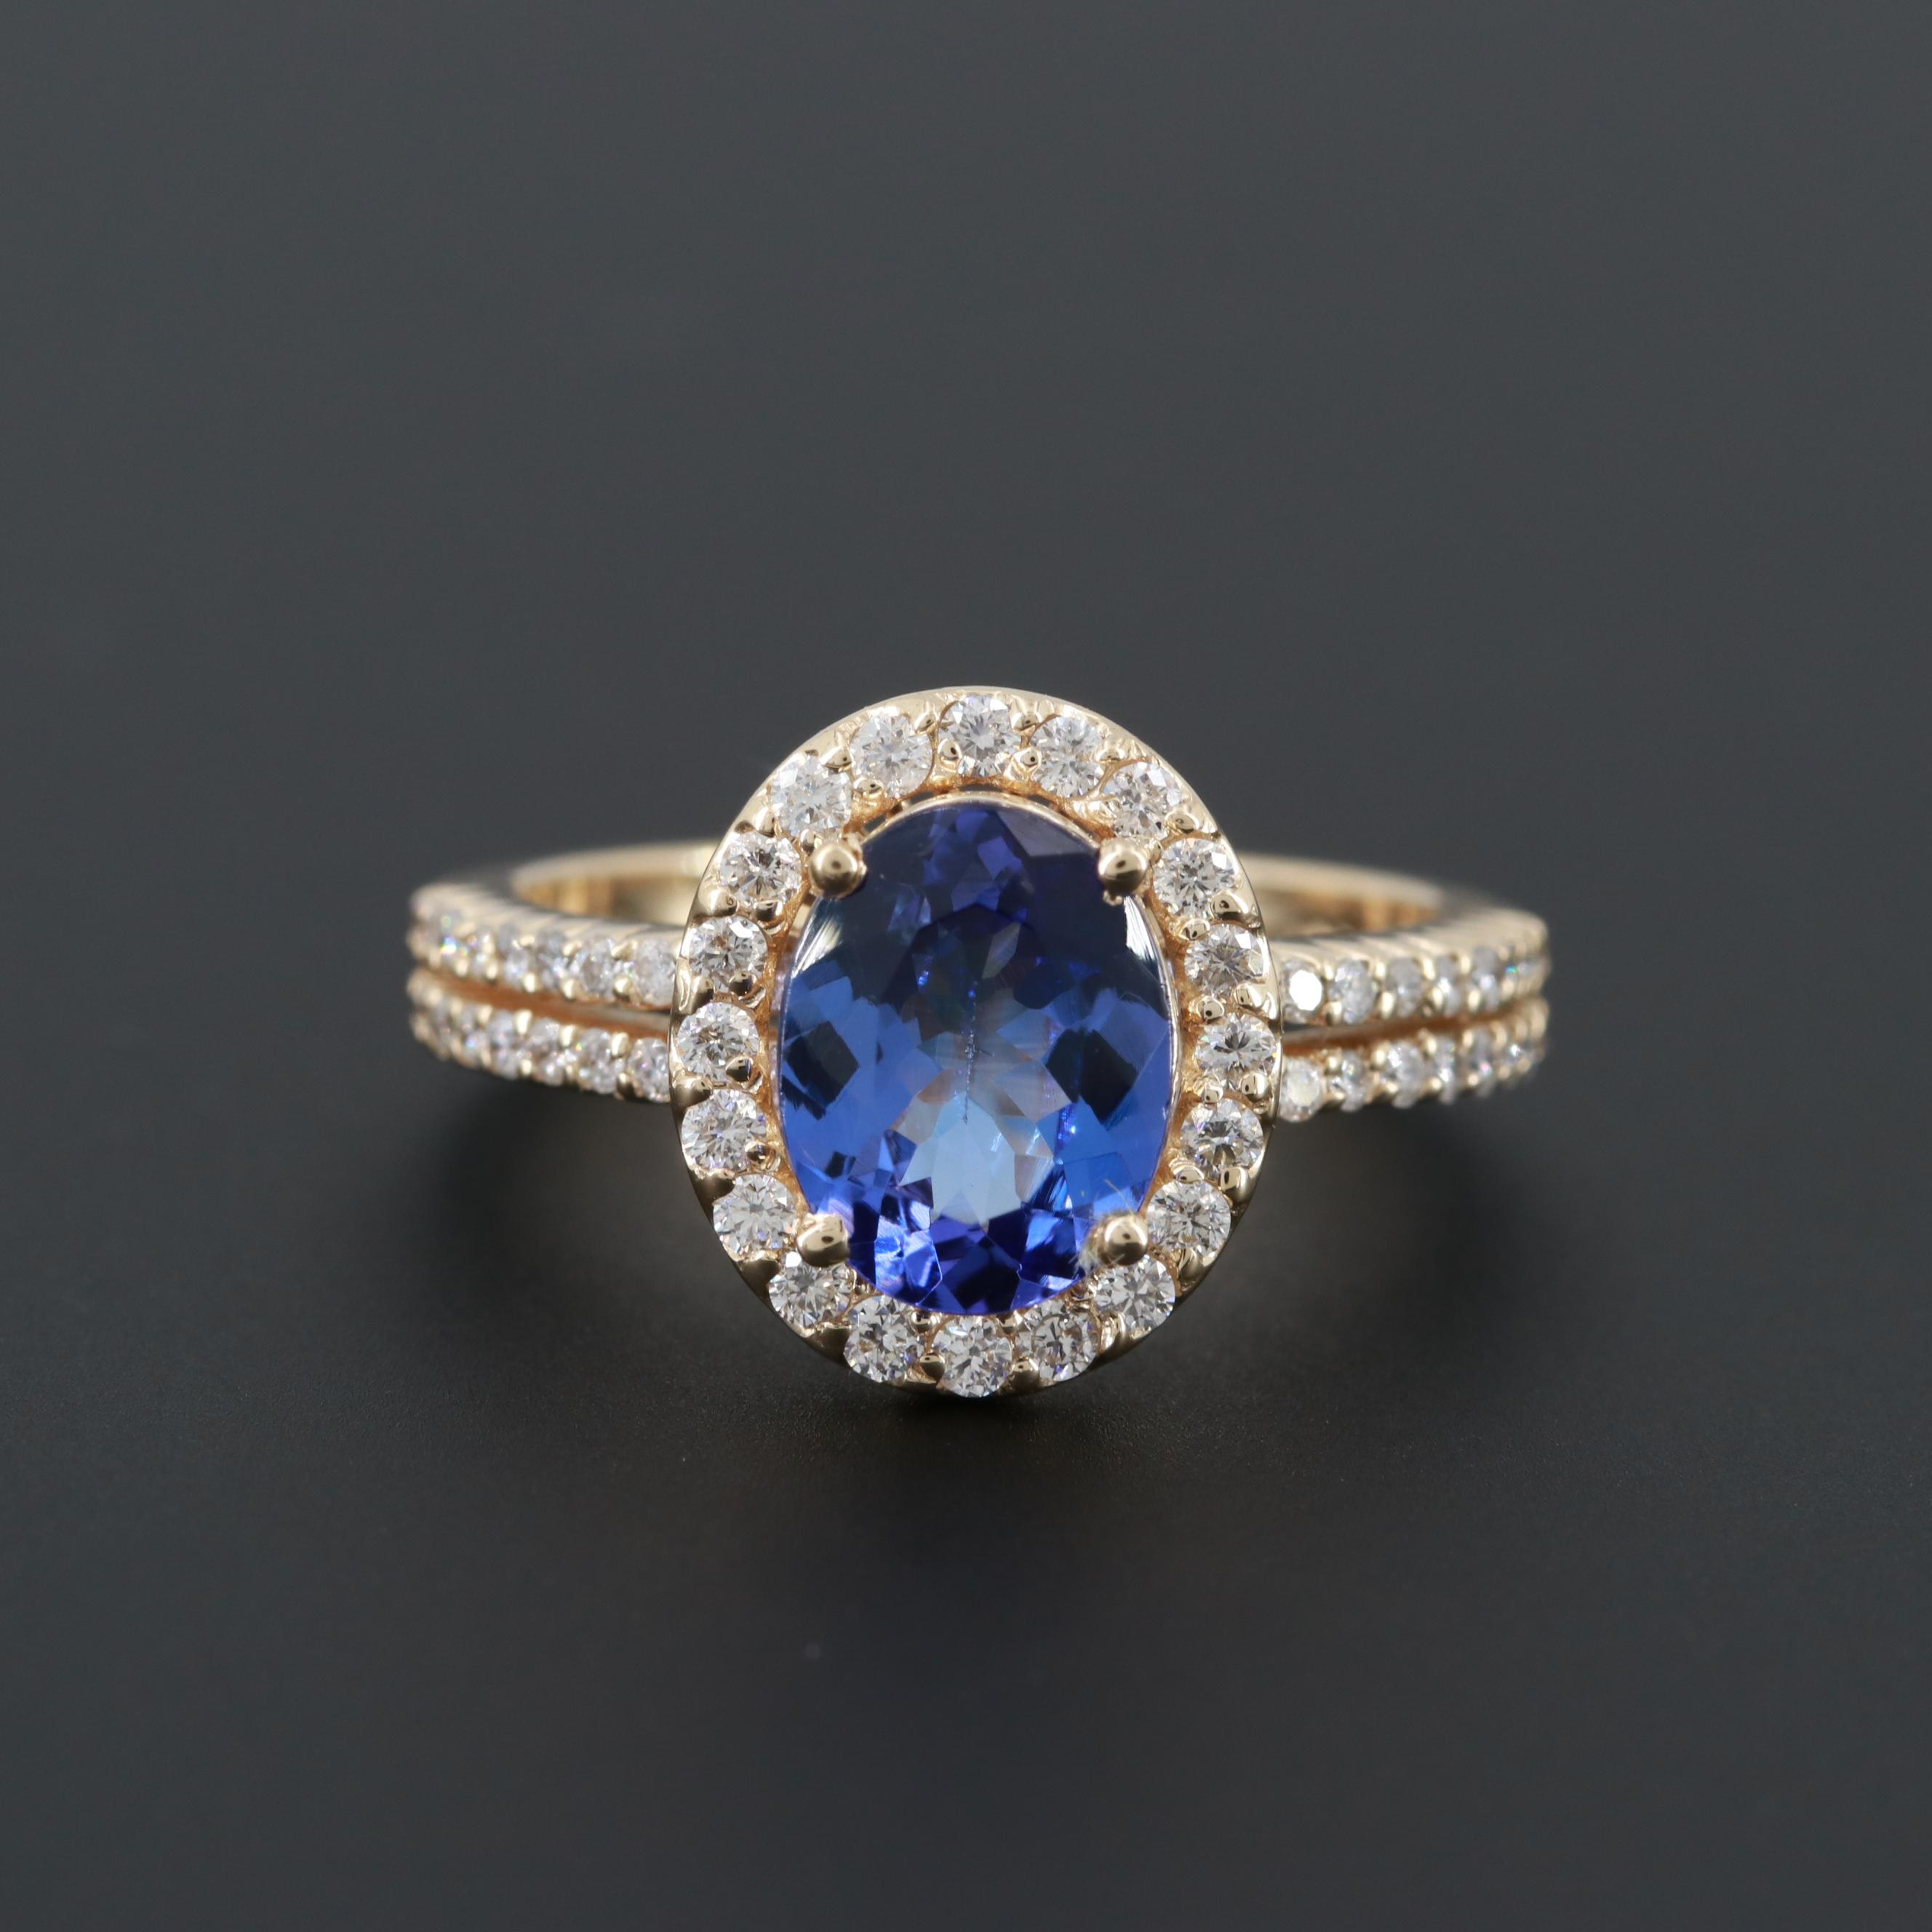 14K Yellow Gold 1.88 CT Tanzanite and Diamond Halo Ring